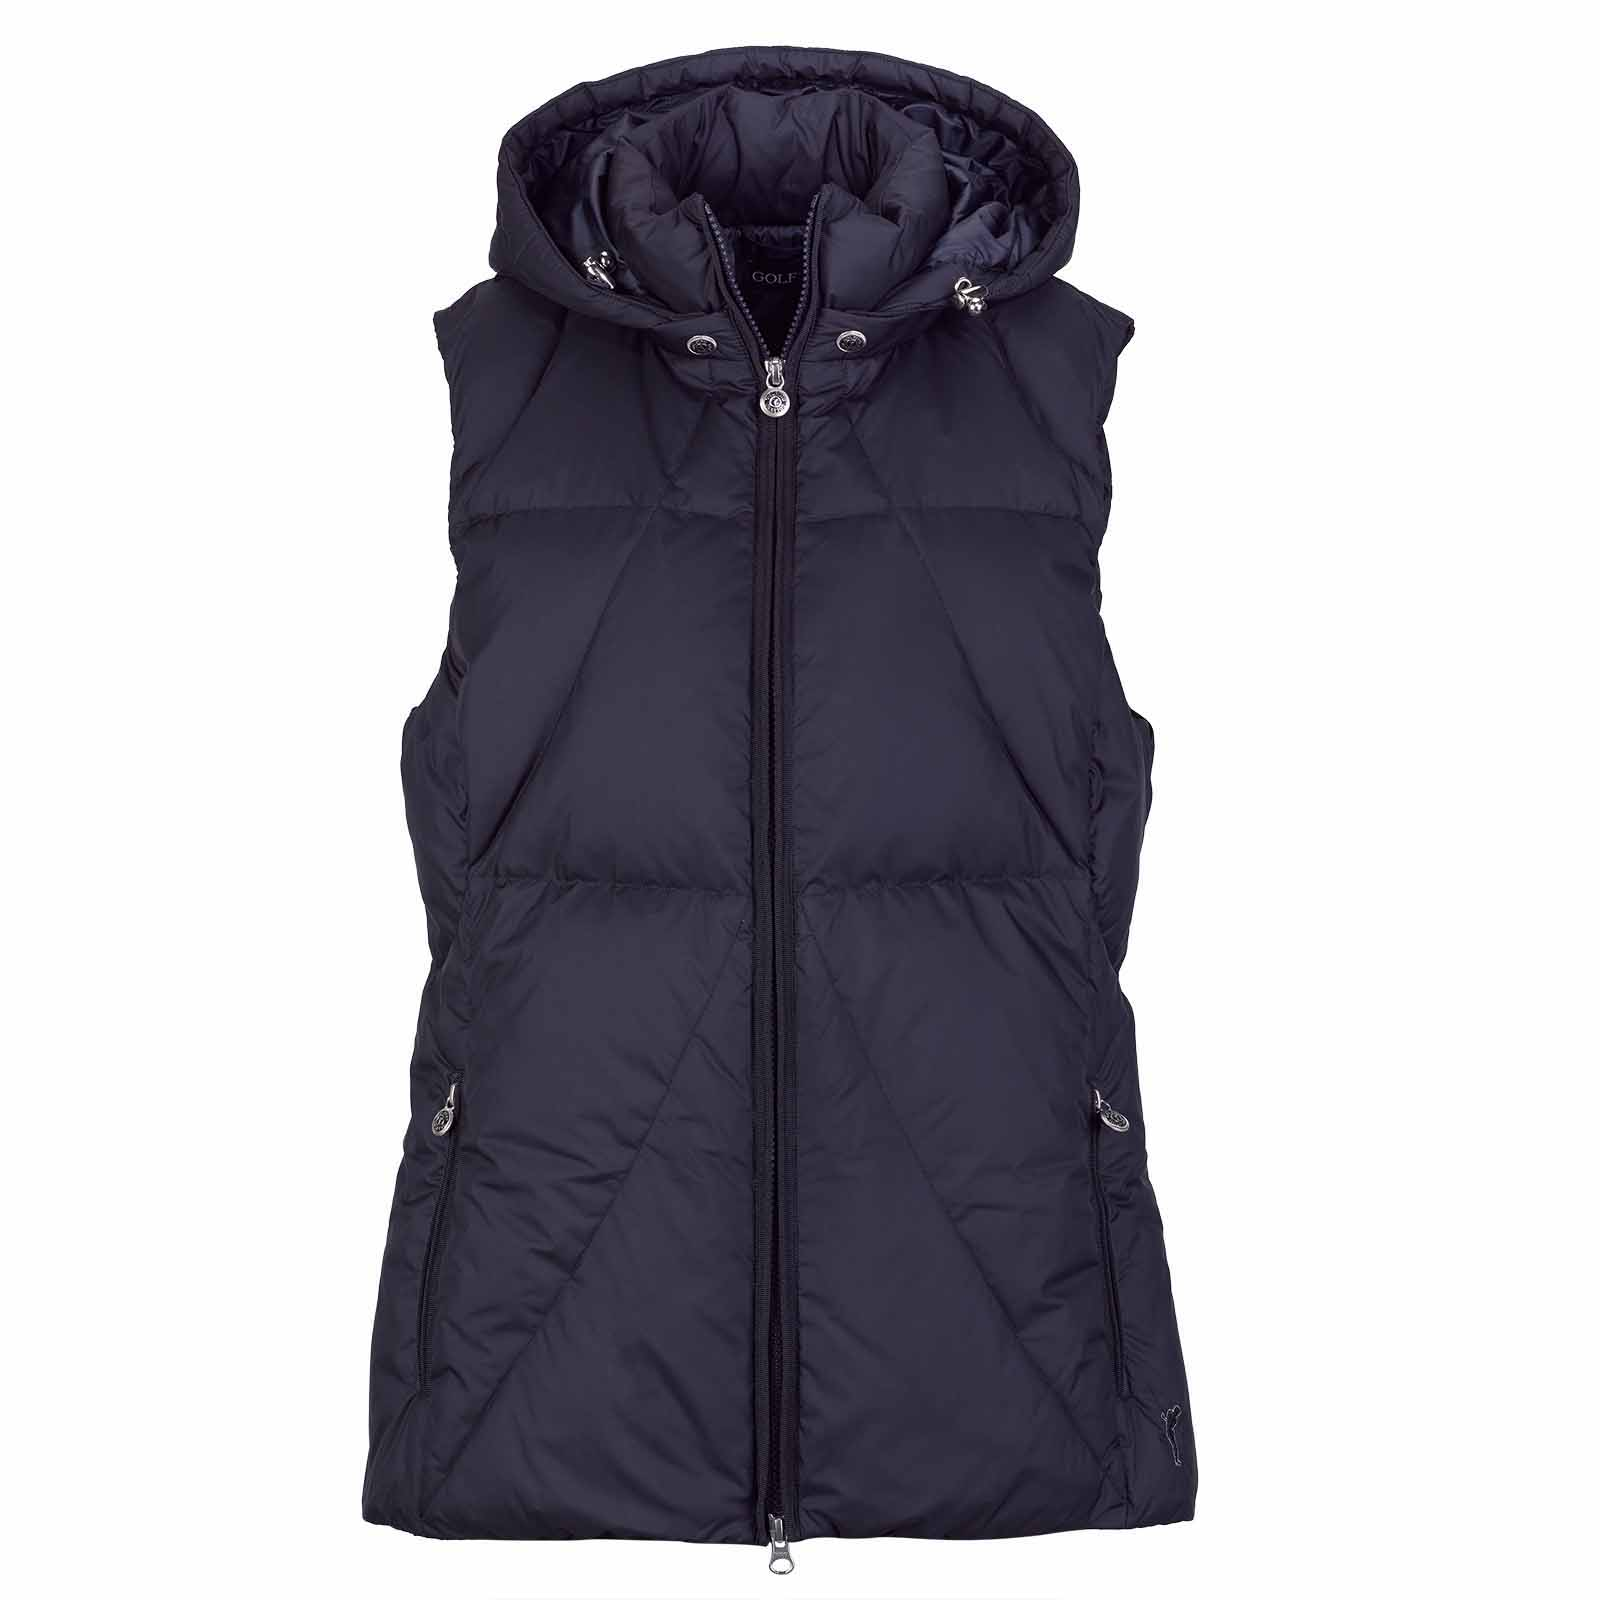 Ladies' Cold Protection golf waistcoat with down filling